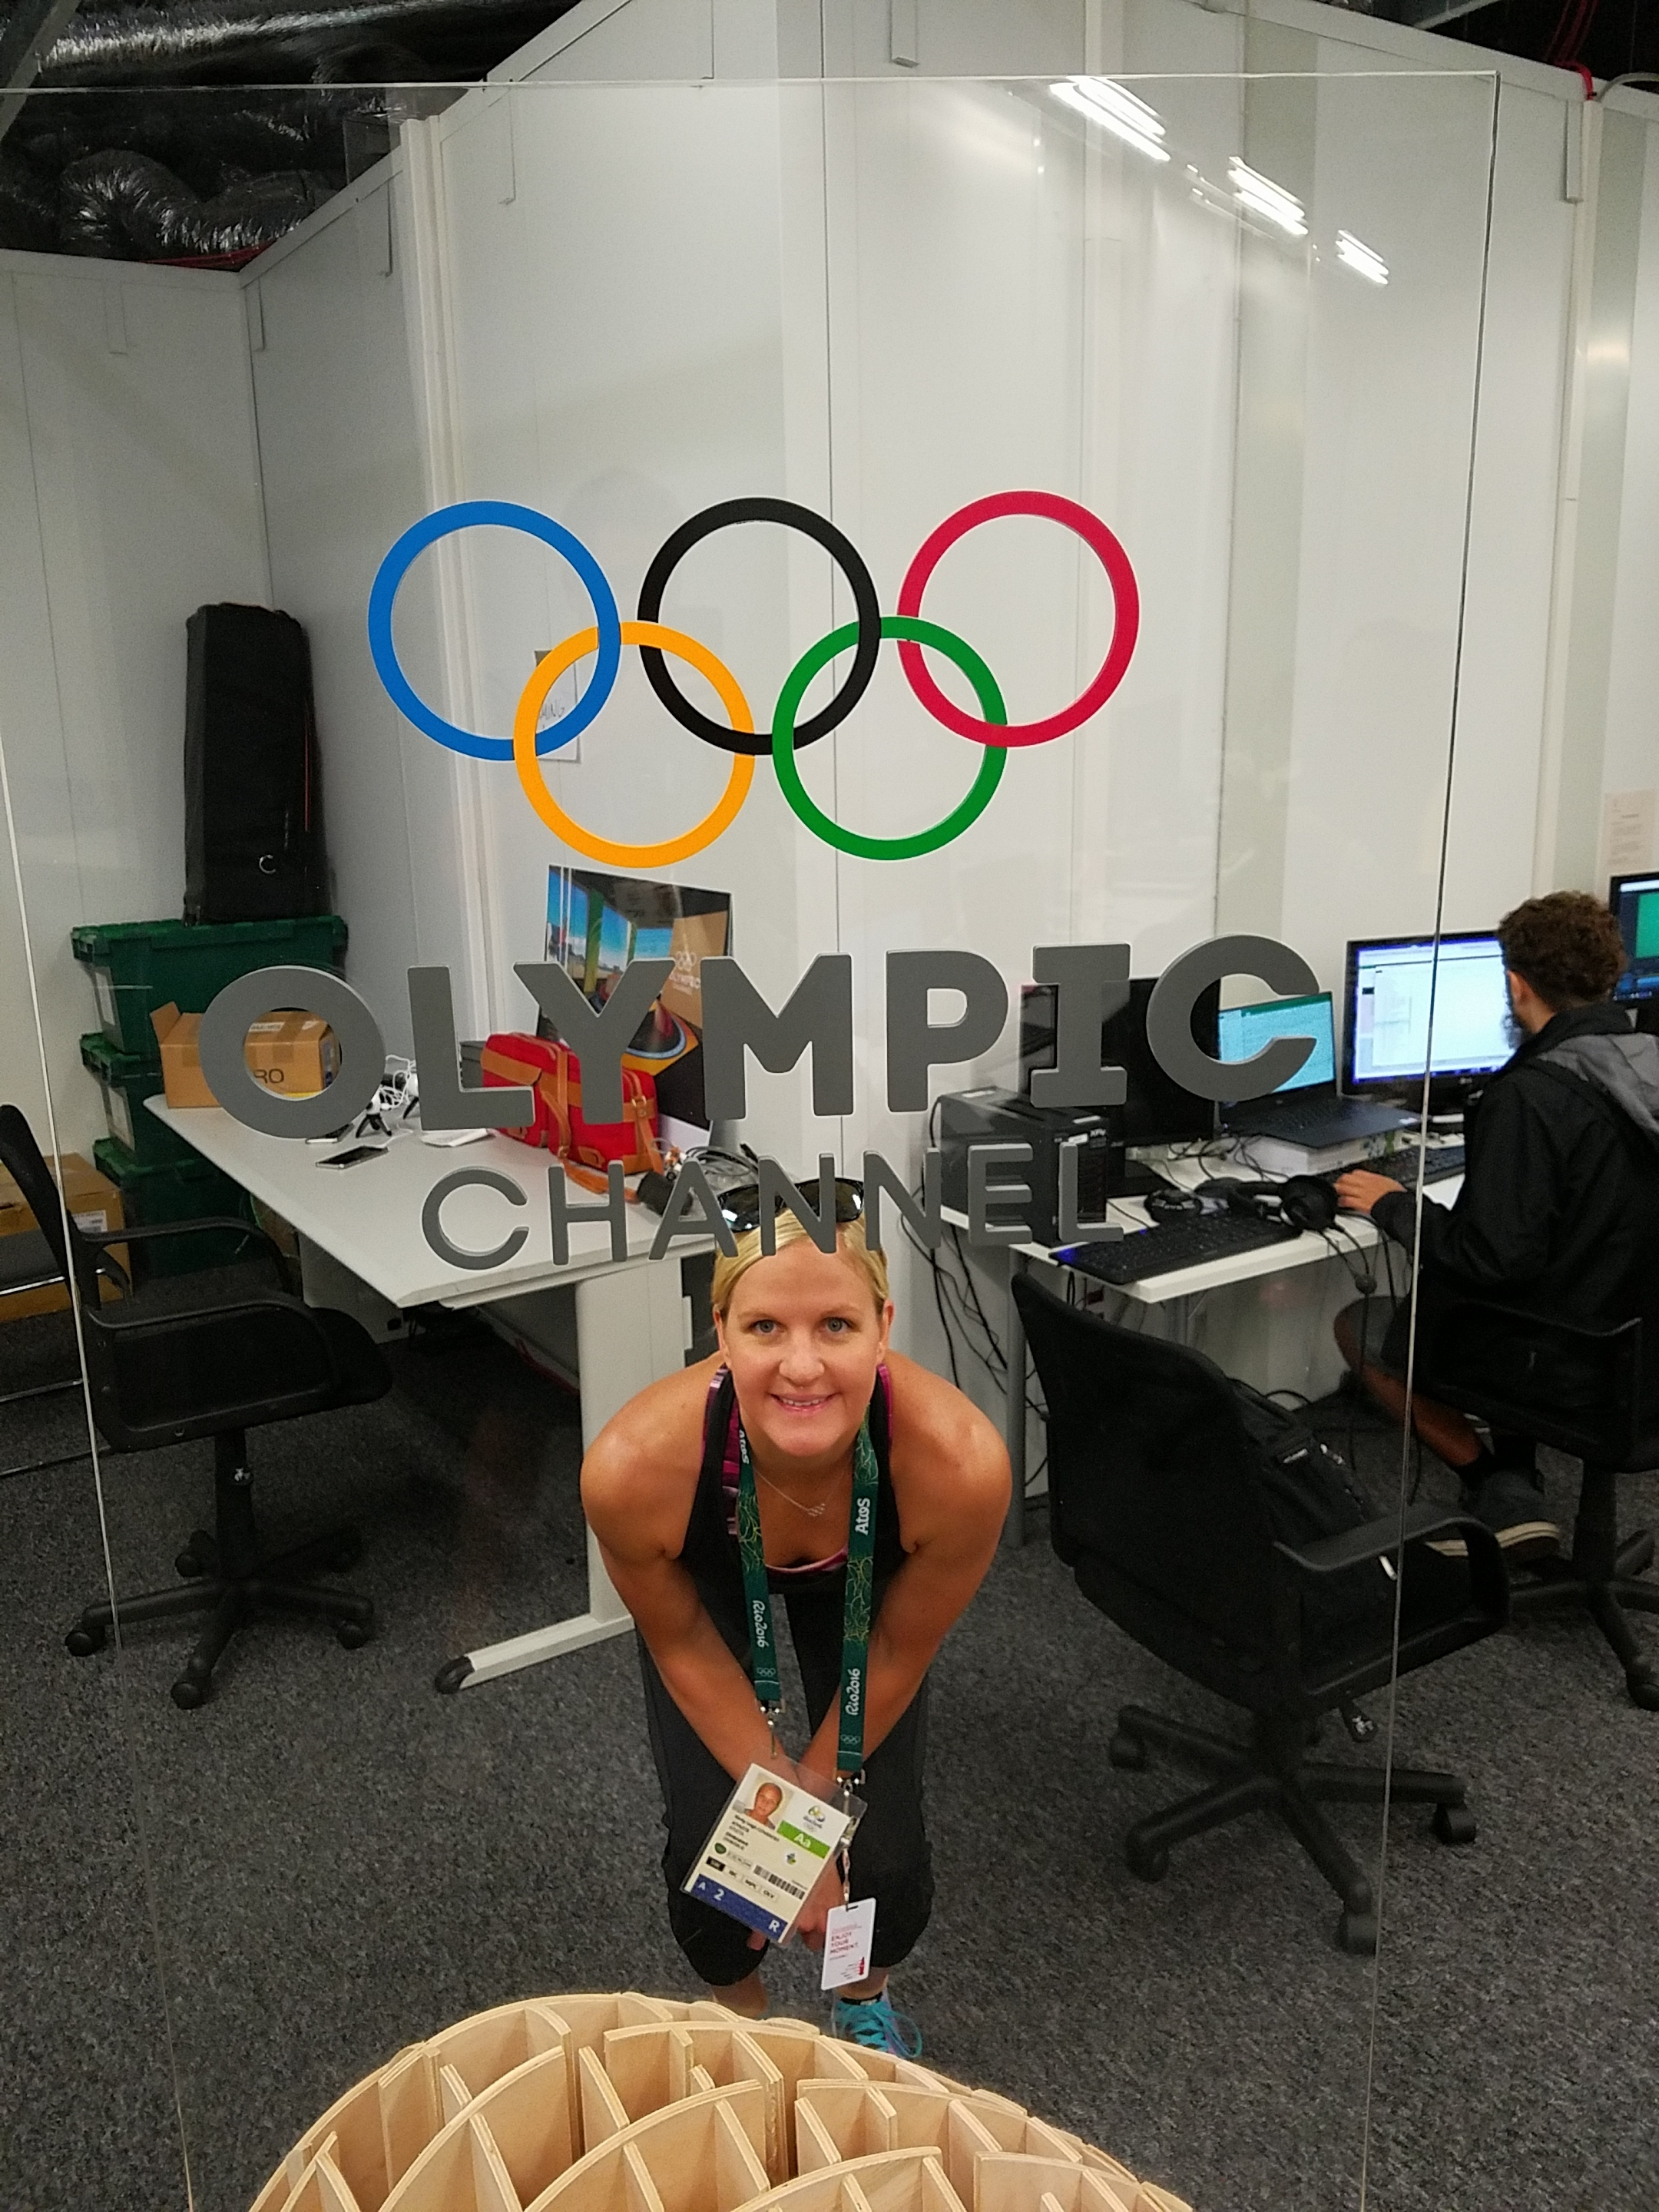 Kirsty-Coventry-Olympic-Channel.jpg